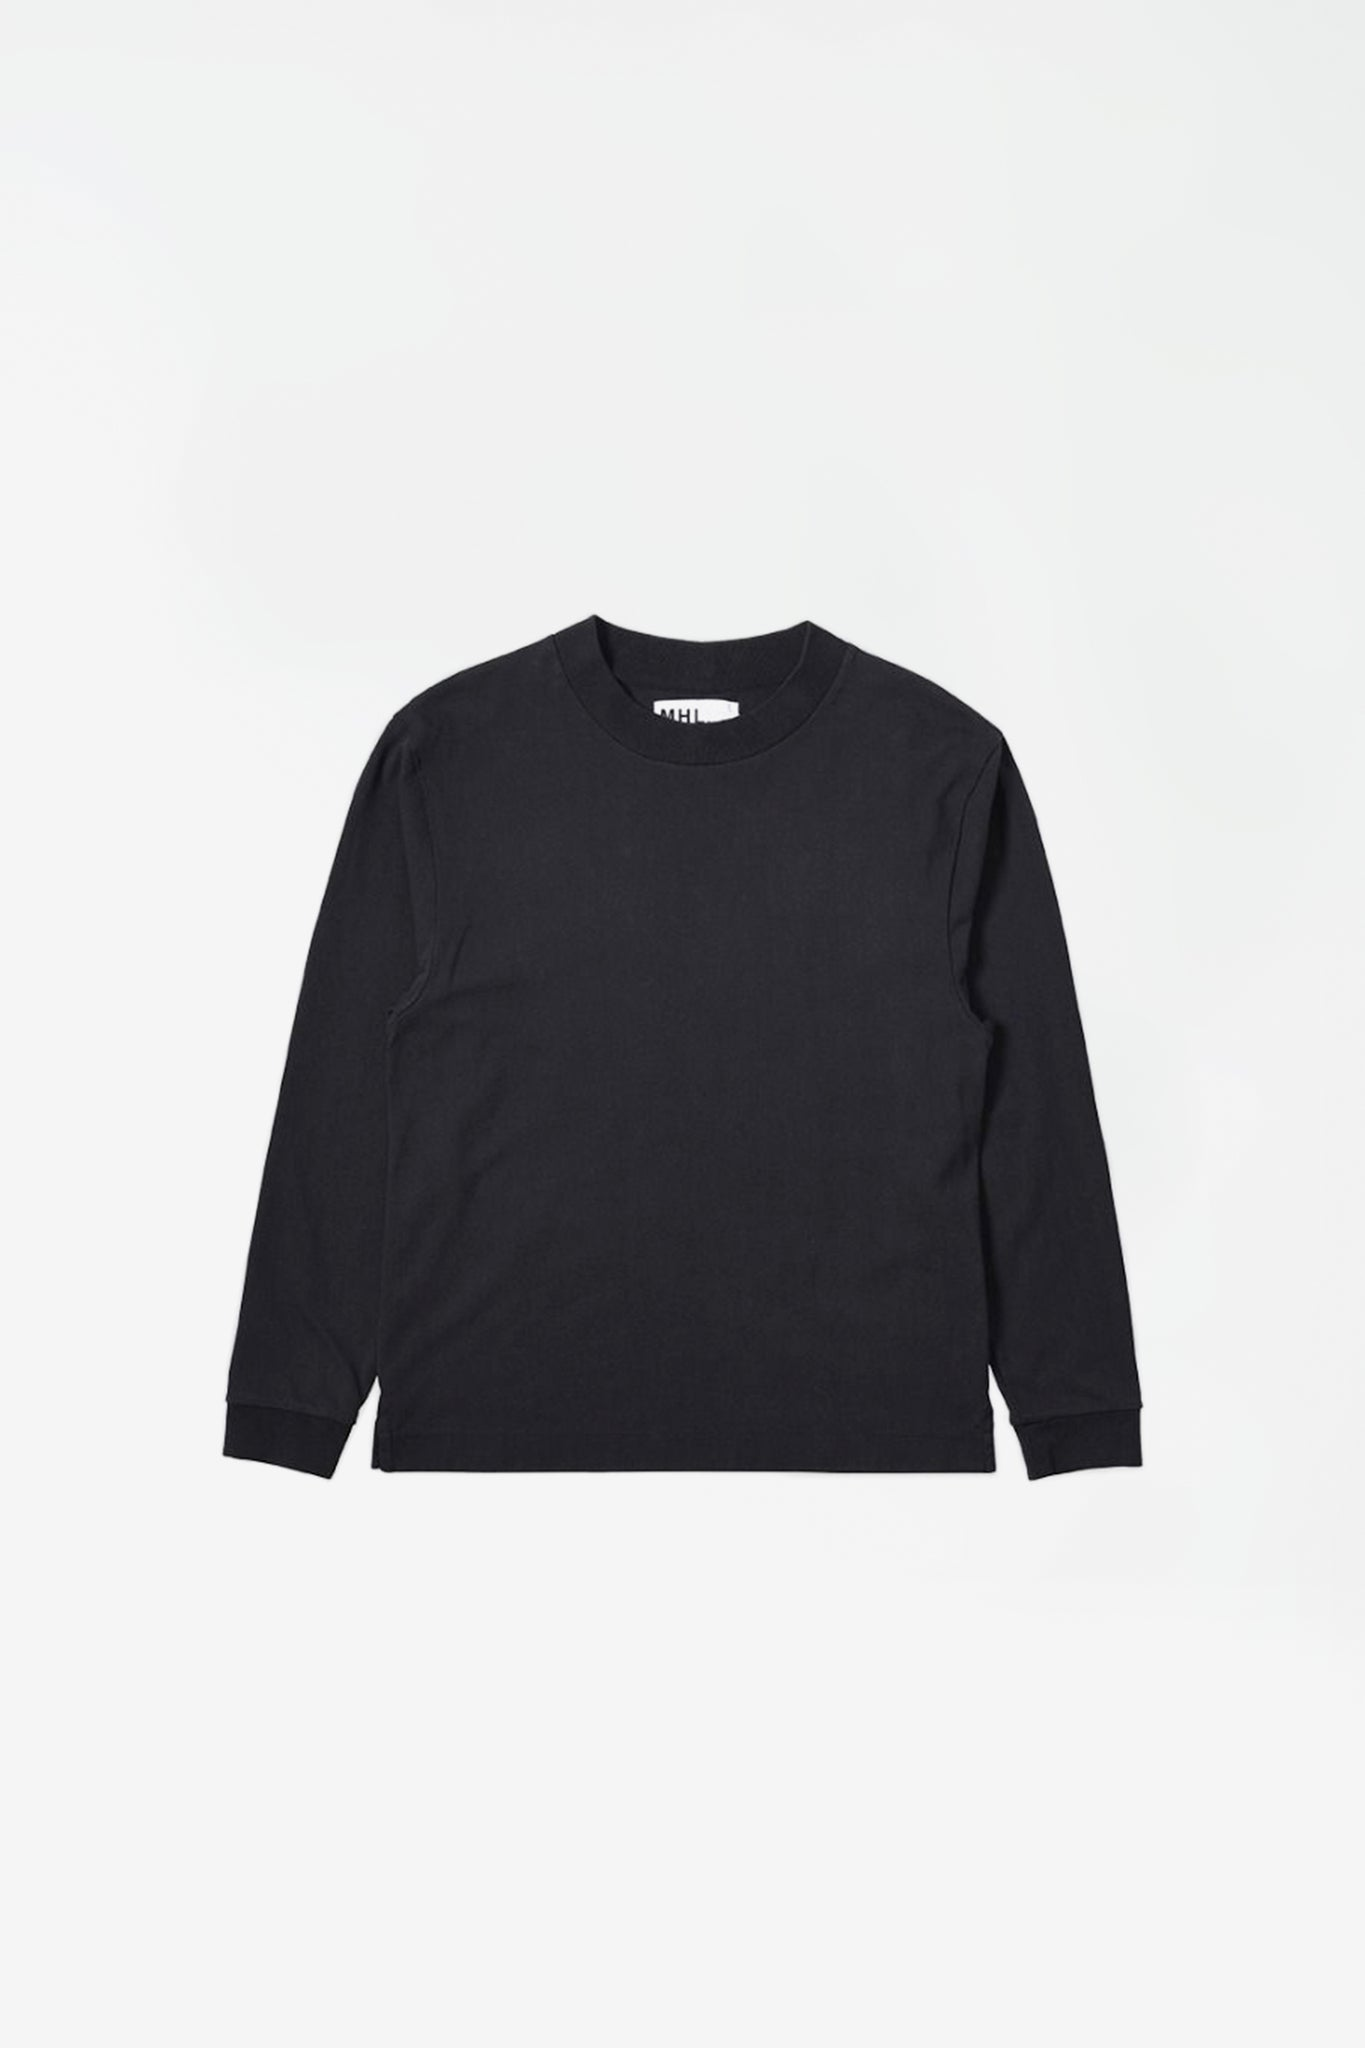 Wide crew neck matt cotton jersey black